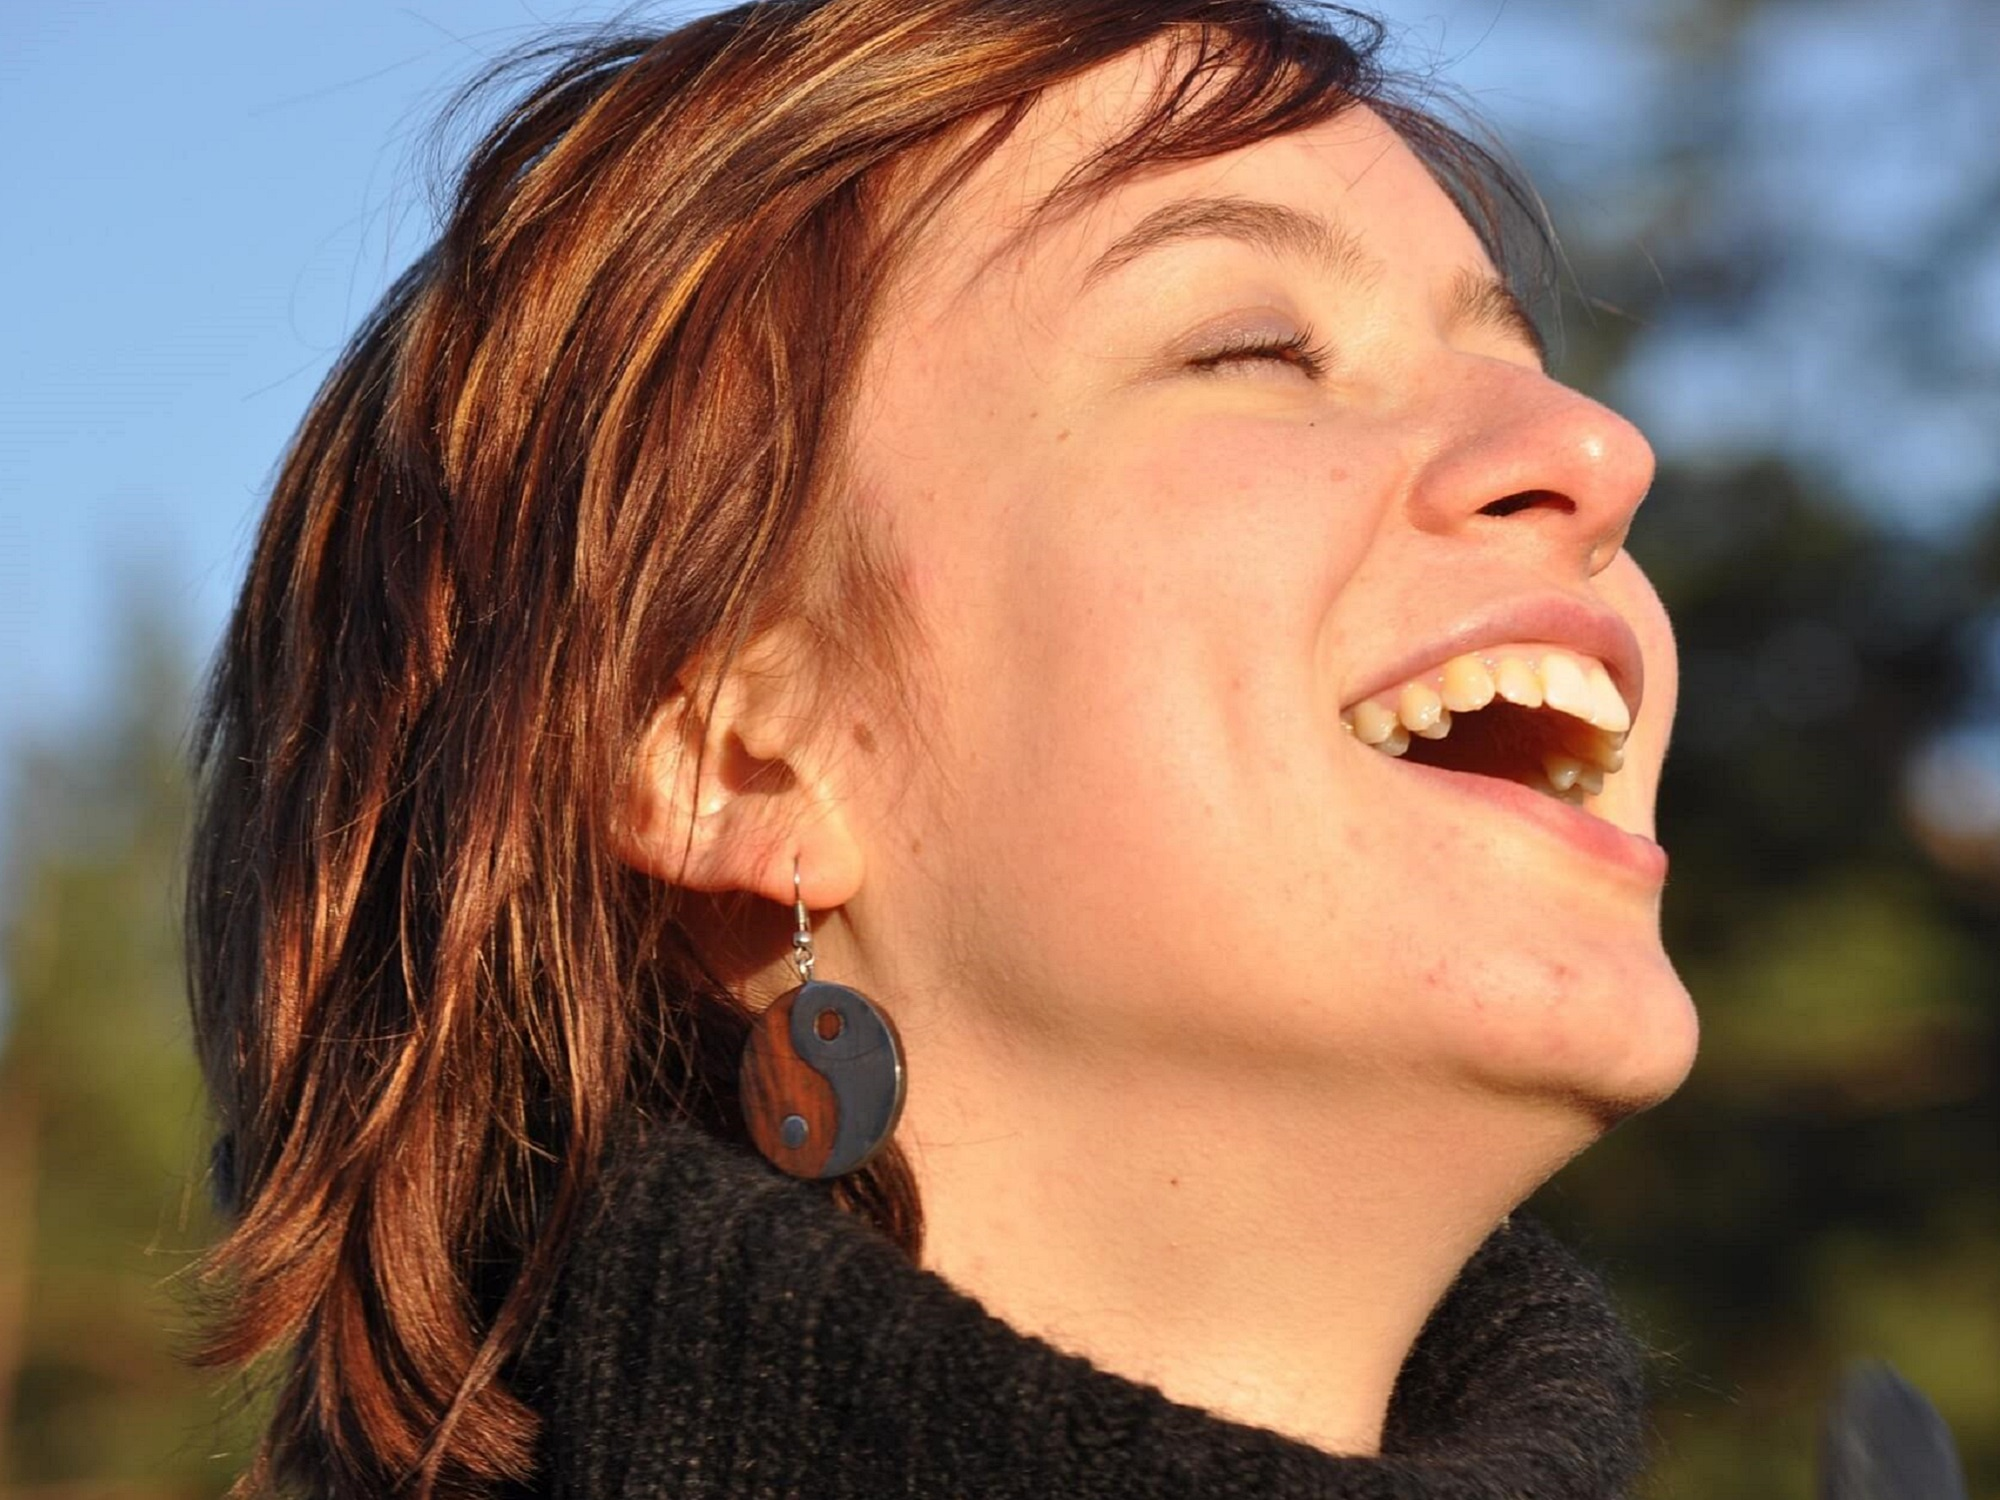 A close-up of a woman laughing